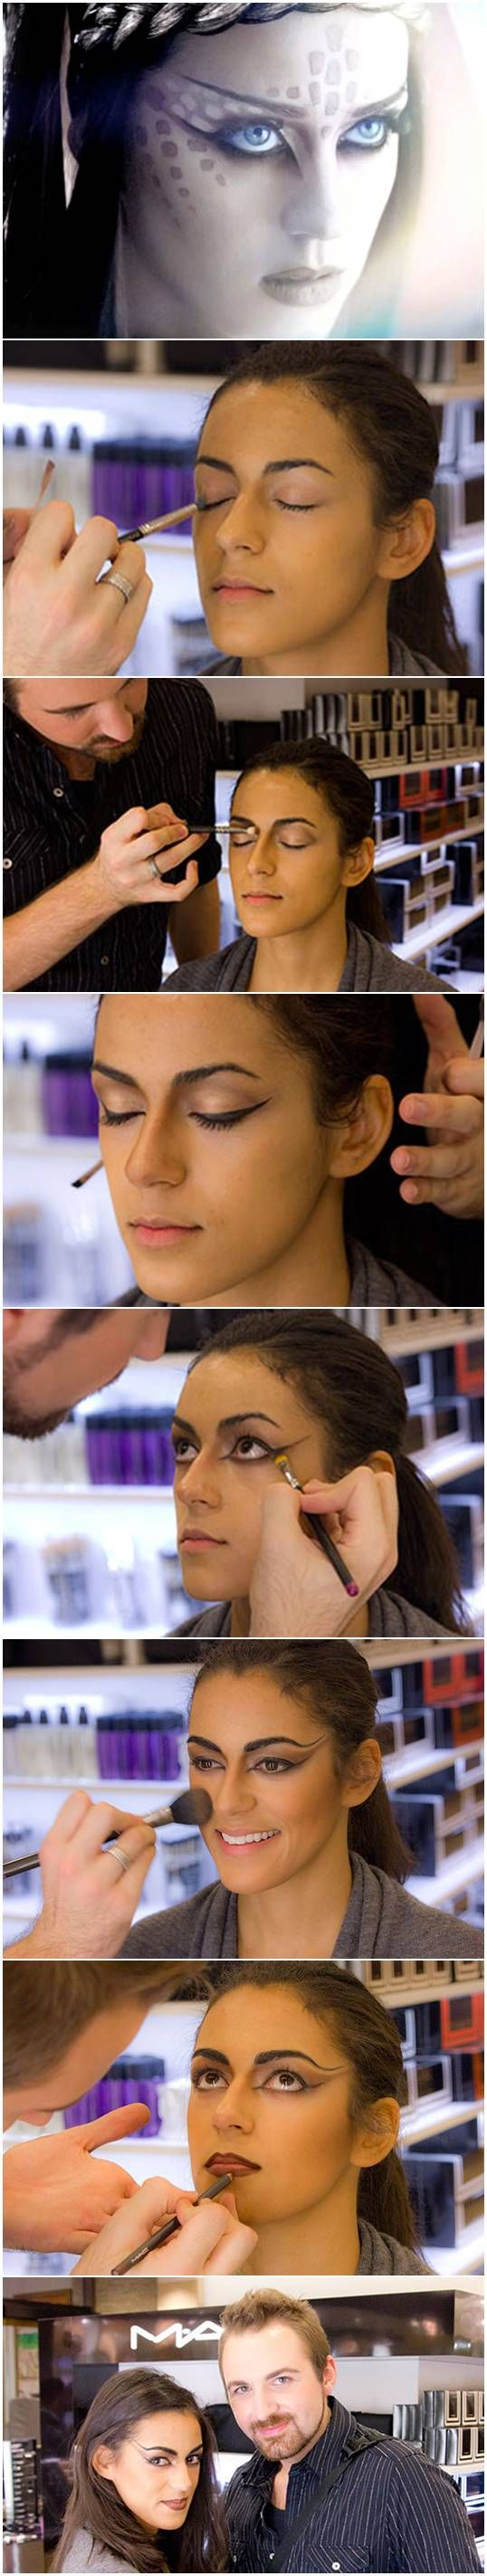 How To: Halloween Makeup Inspired by Katy Perry's E.T. Video